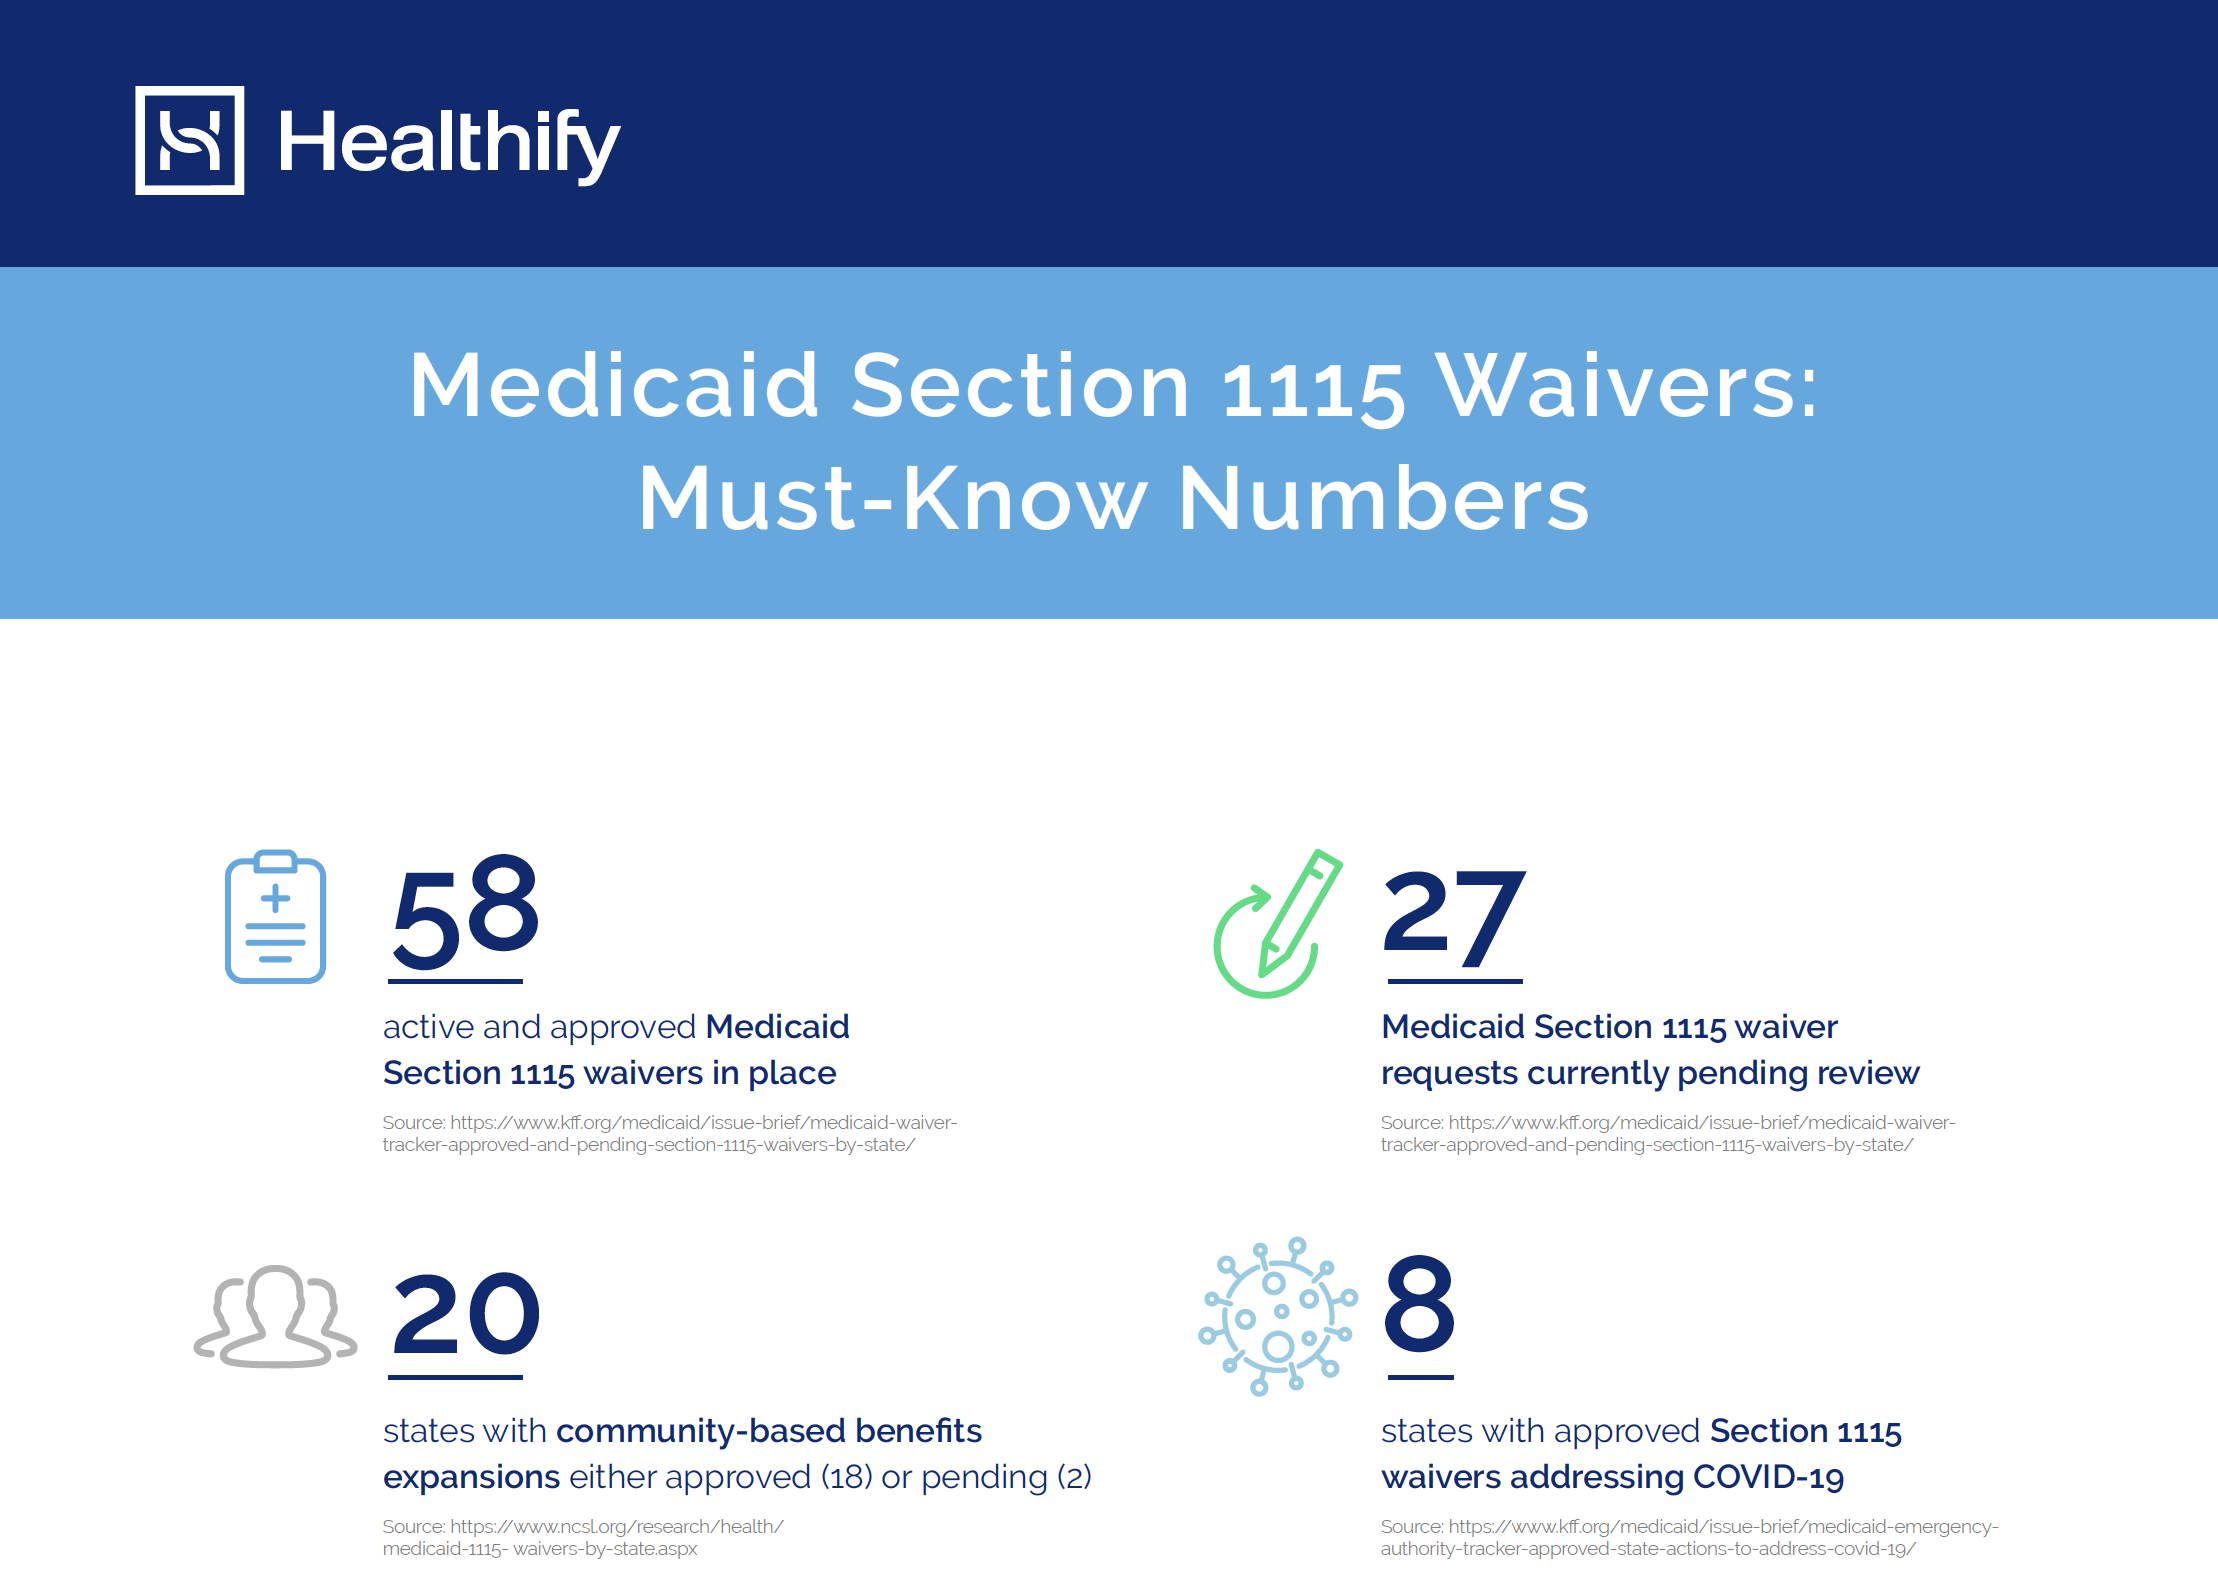 Medicaid Section 1115 Waivers Must-Know Numbers